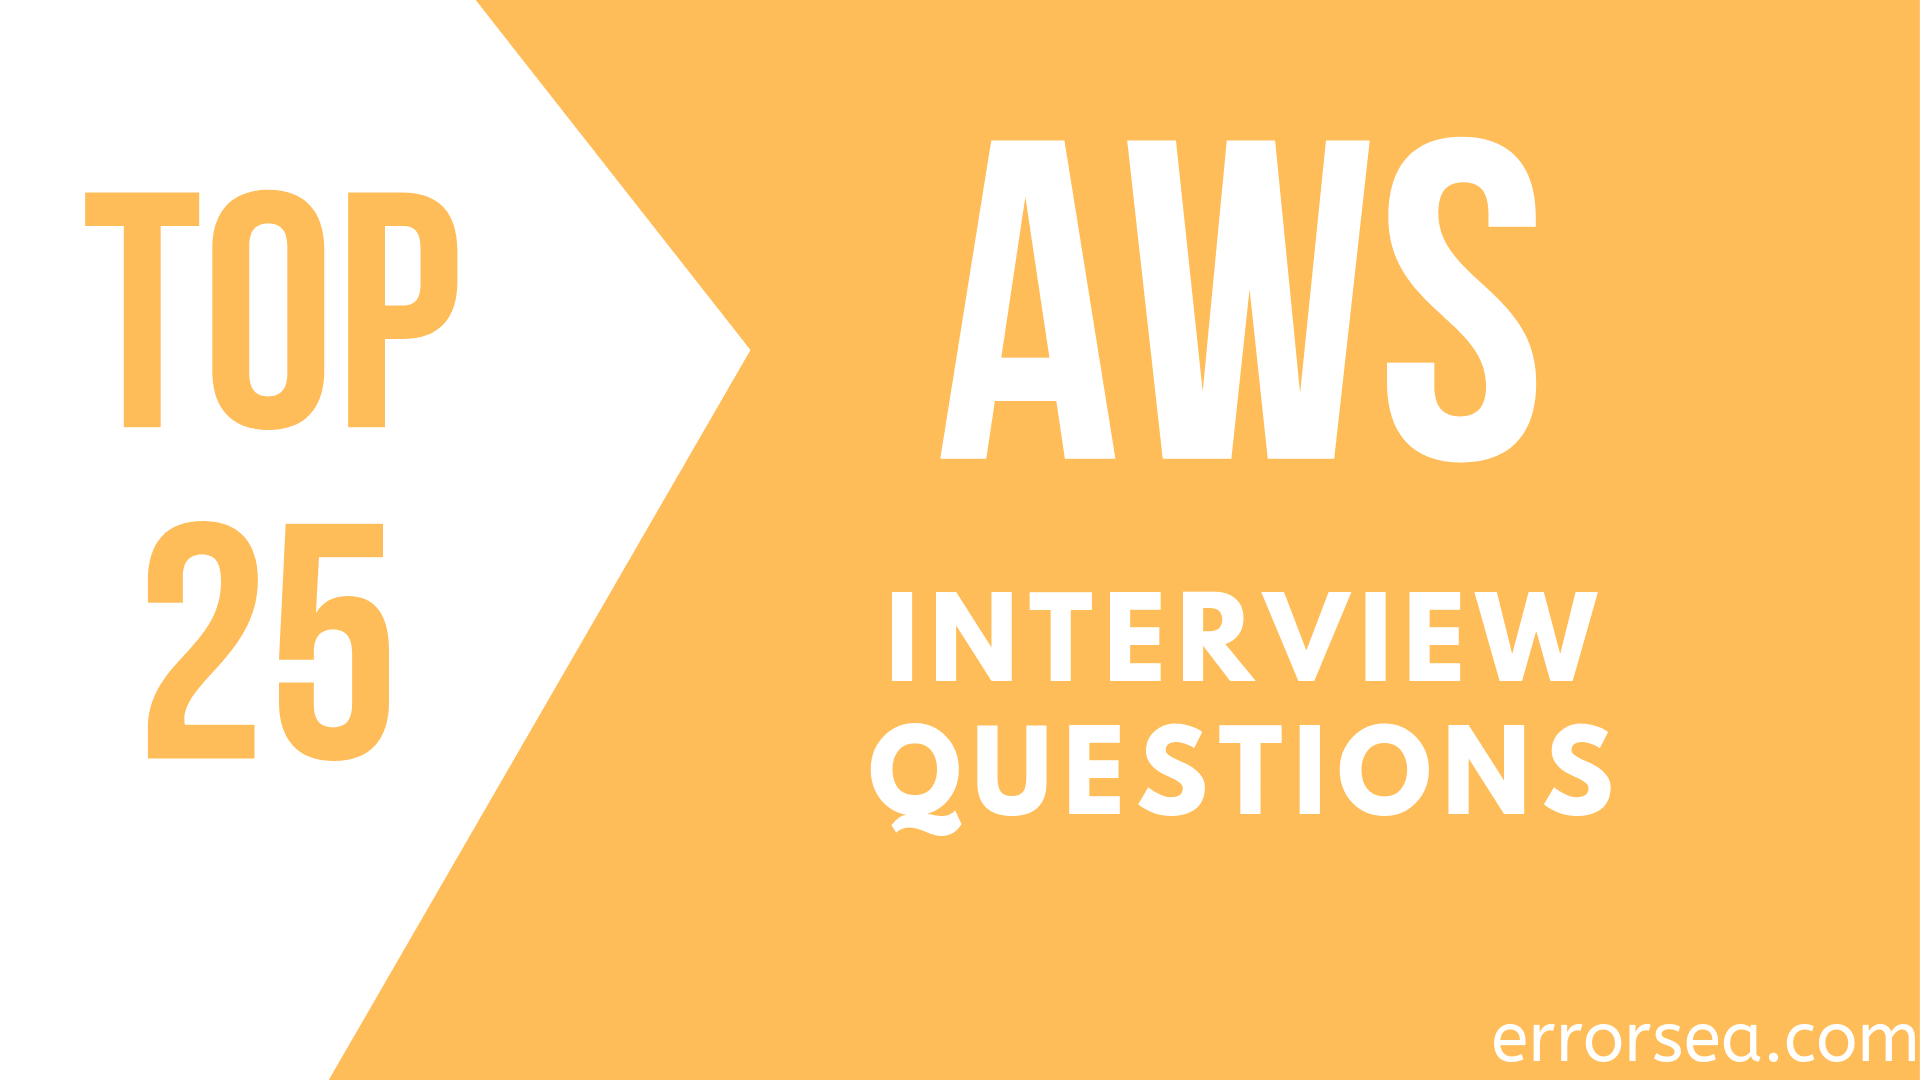 Top 25 AWS Interview Questions